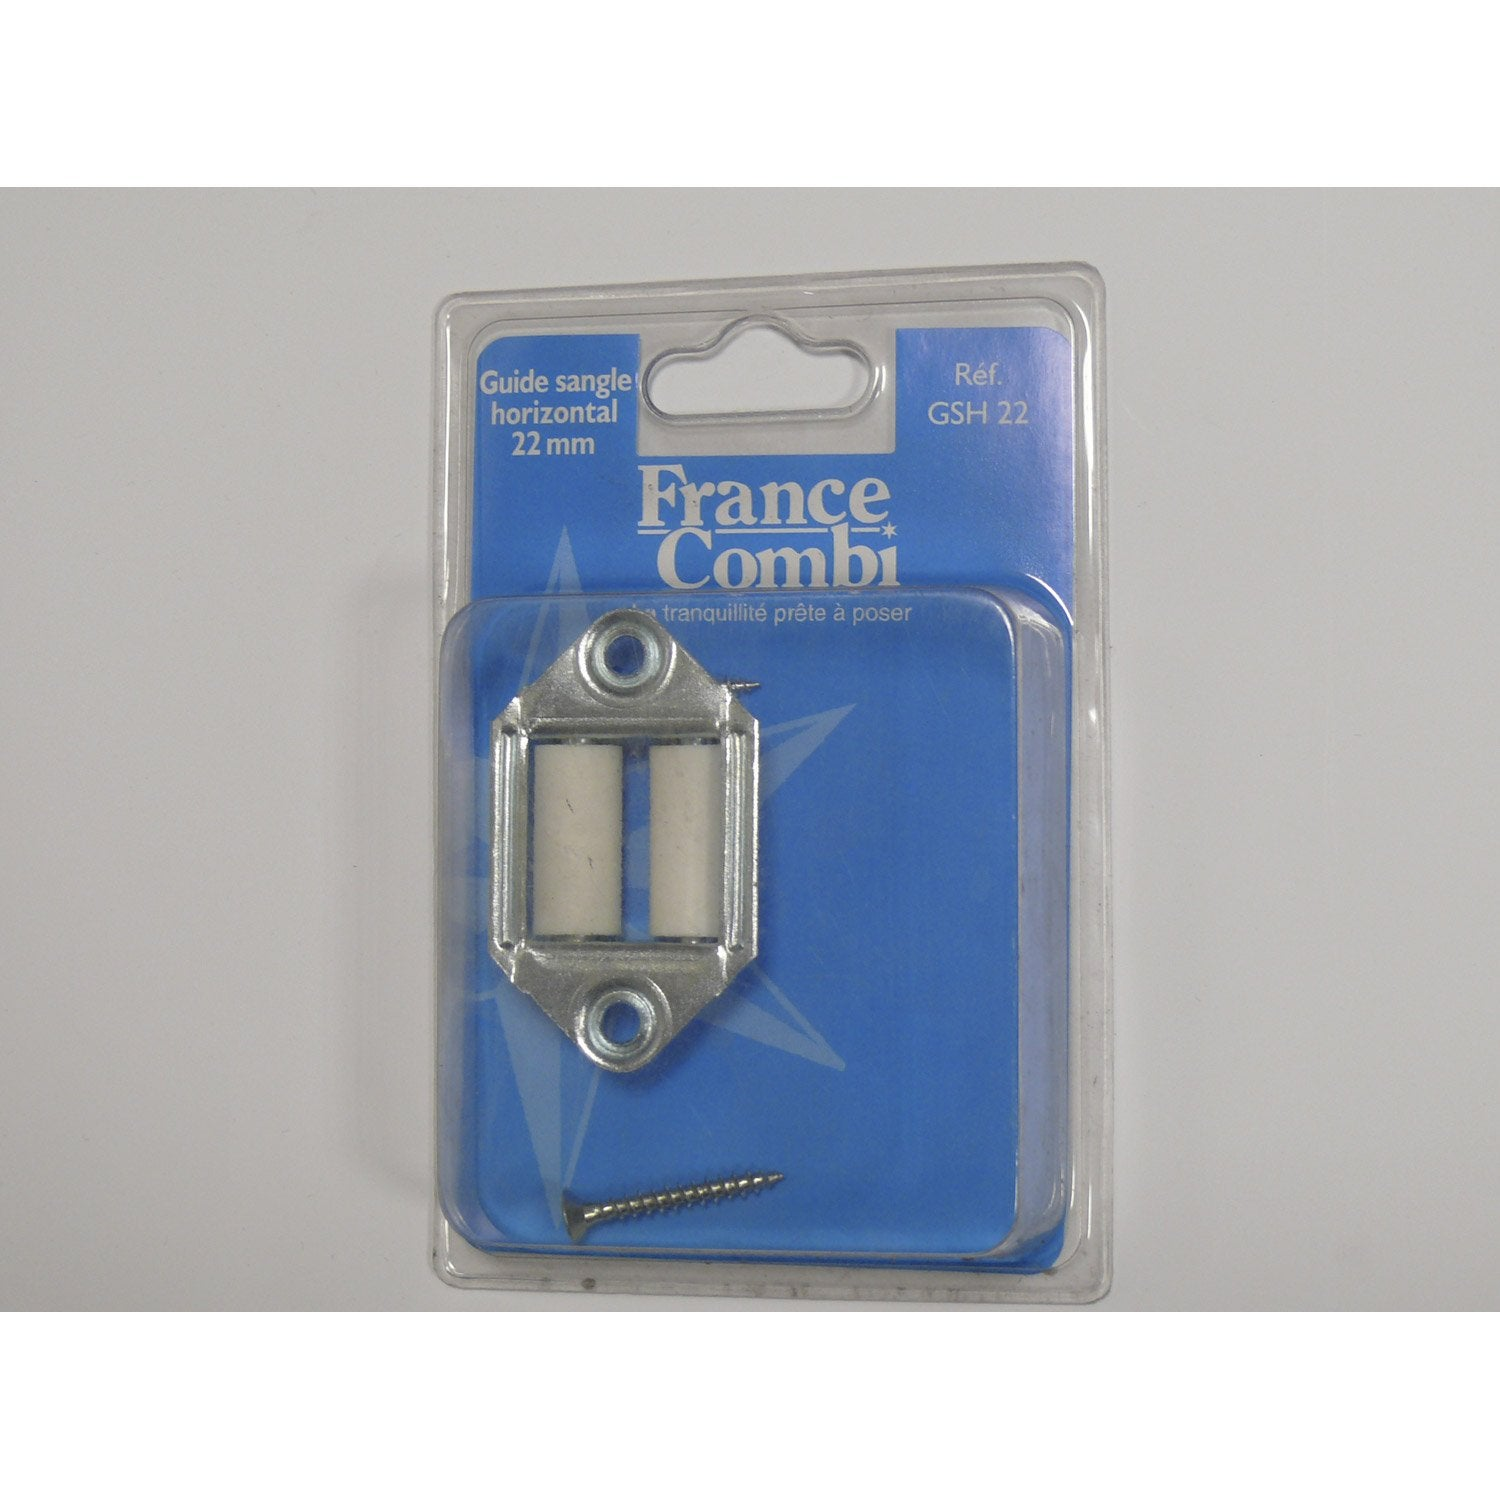 Guide sangle pour volet roulant leroy merlin for Sangle enrouleur piscine